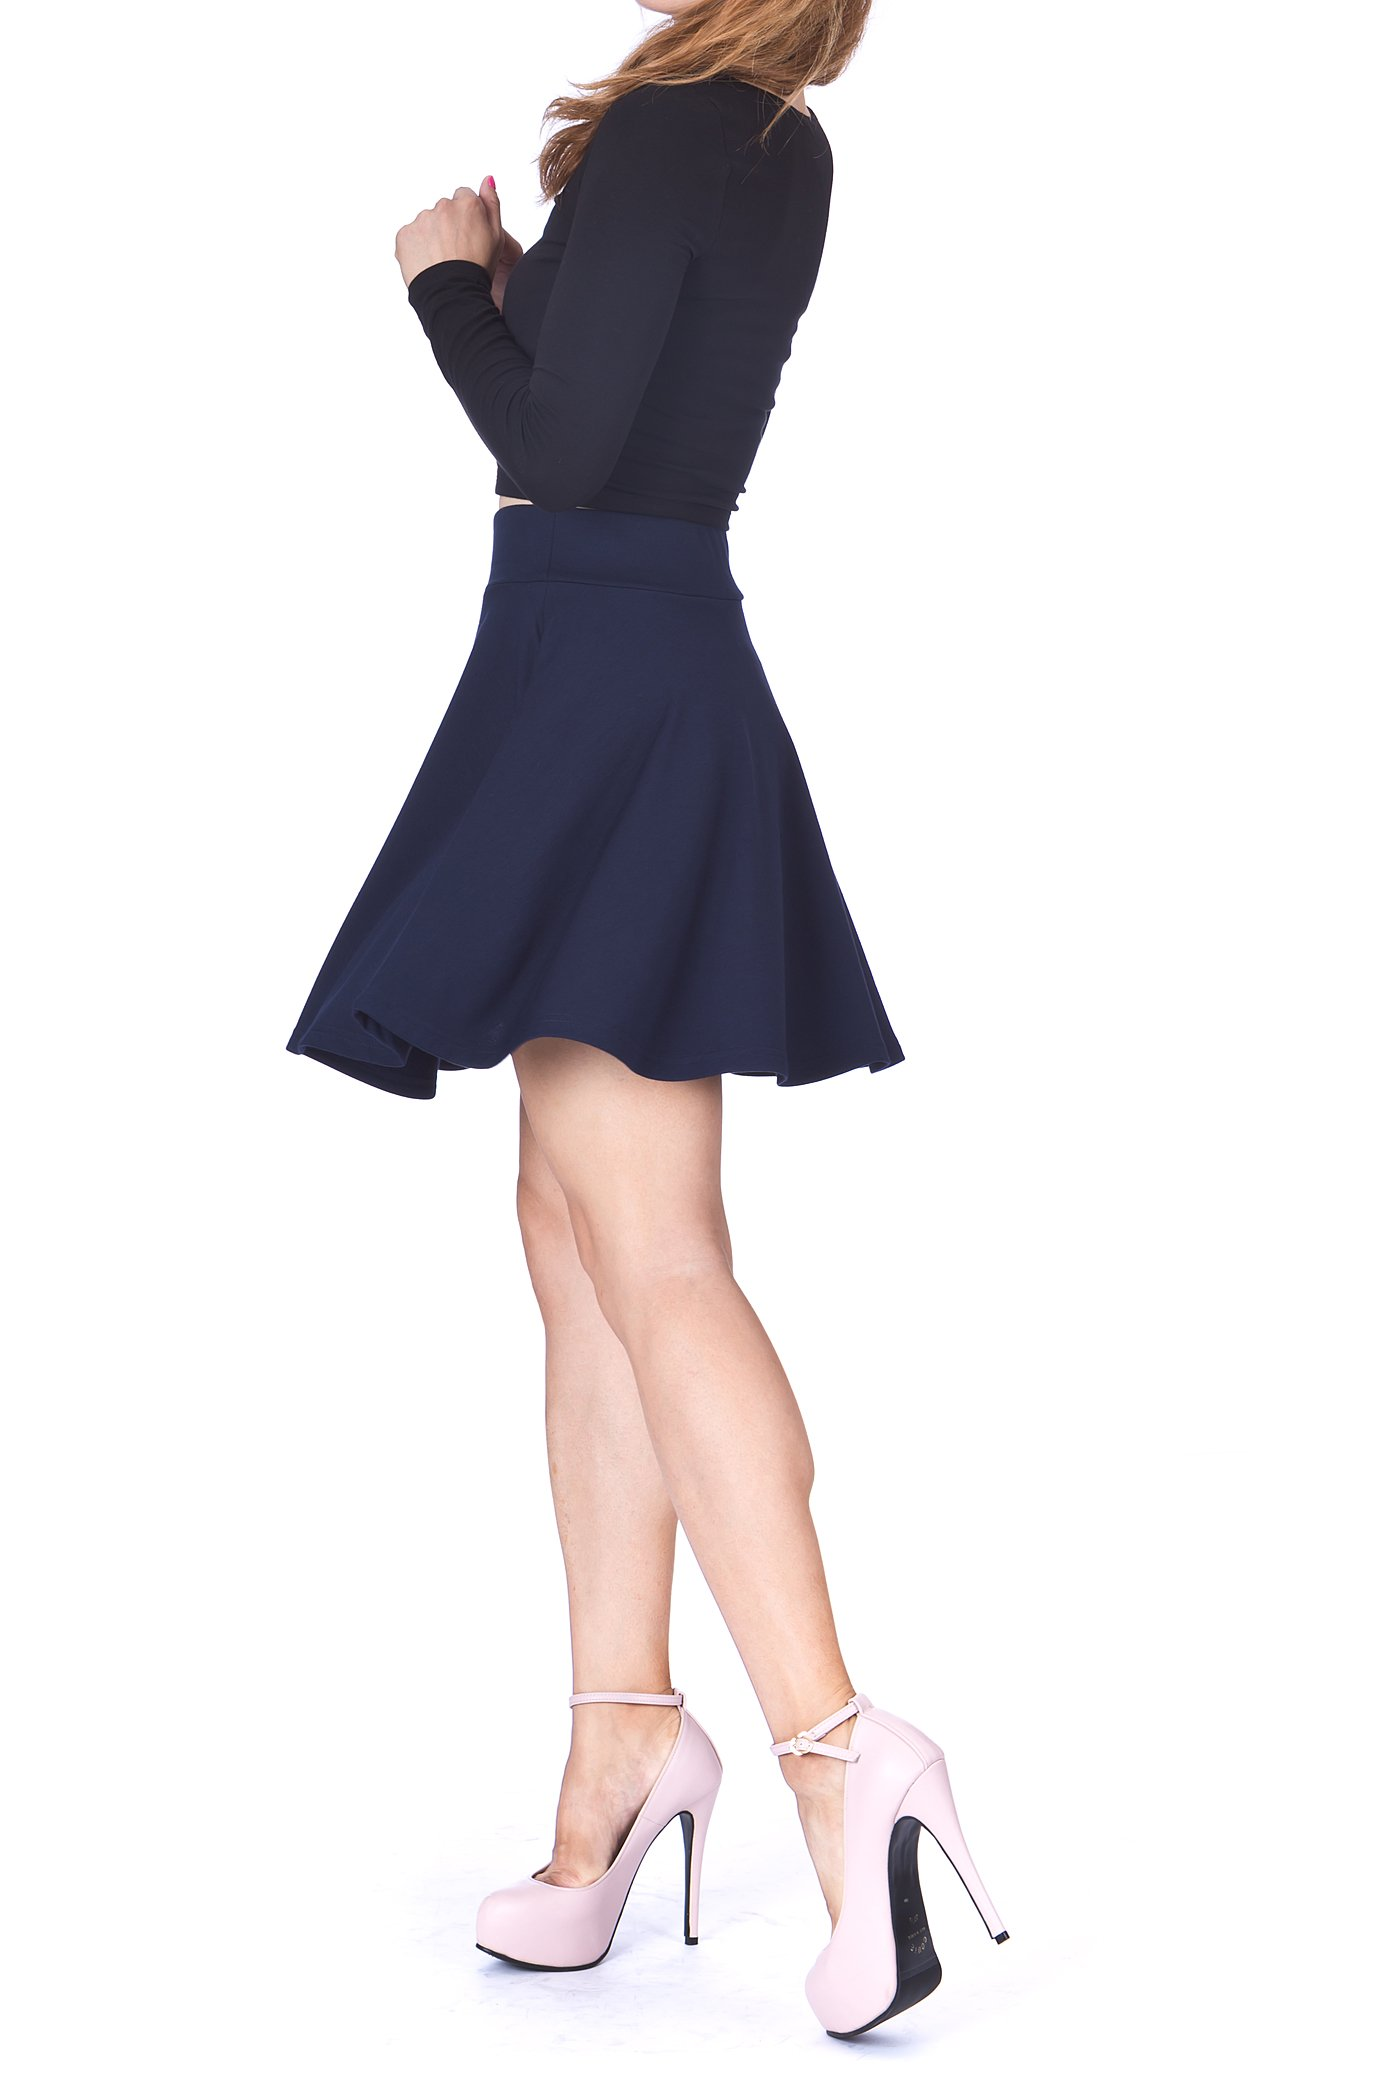 Swing Swing Wide High Waist A line Full Flared Swing Skater Short Mini Skirt Navy 1 1